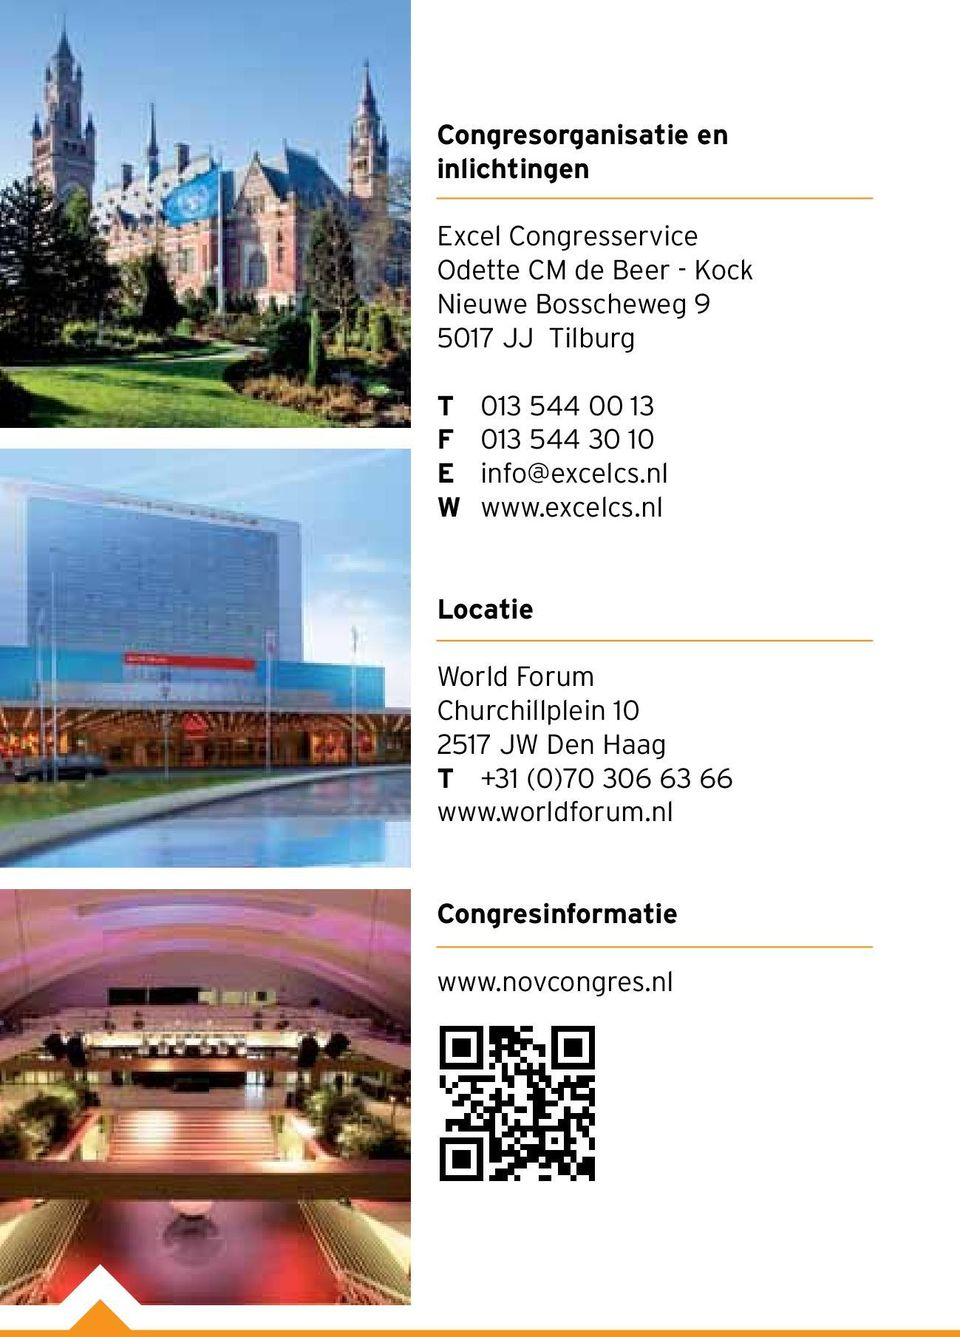 info@excelcs.